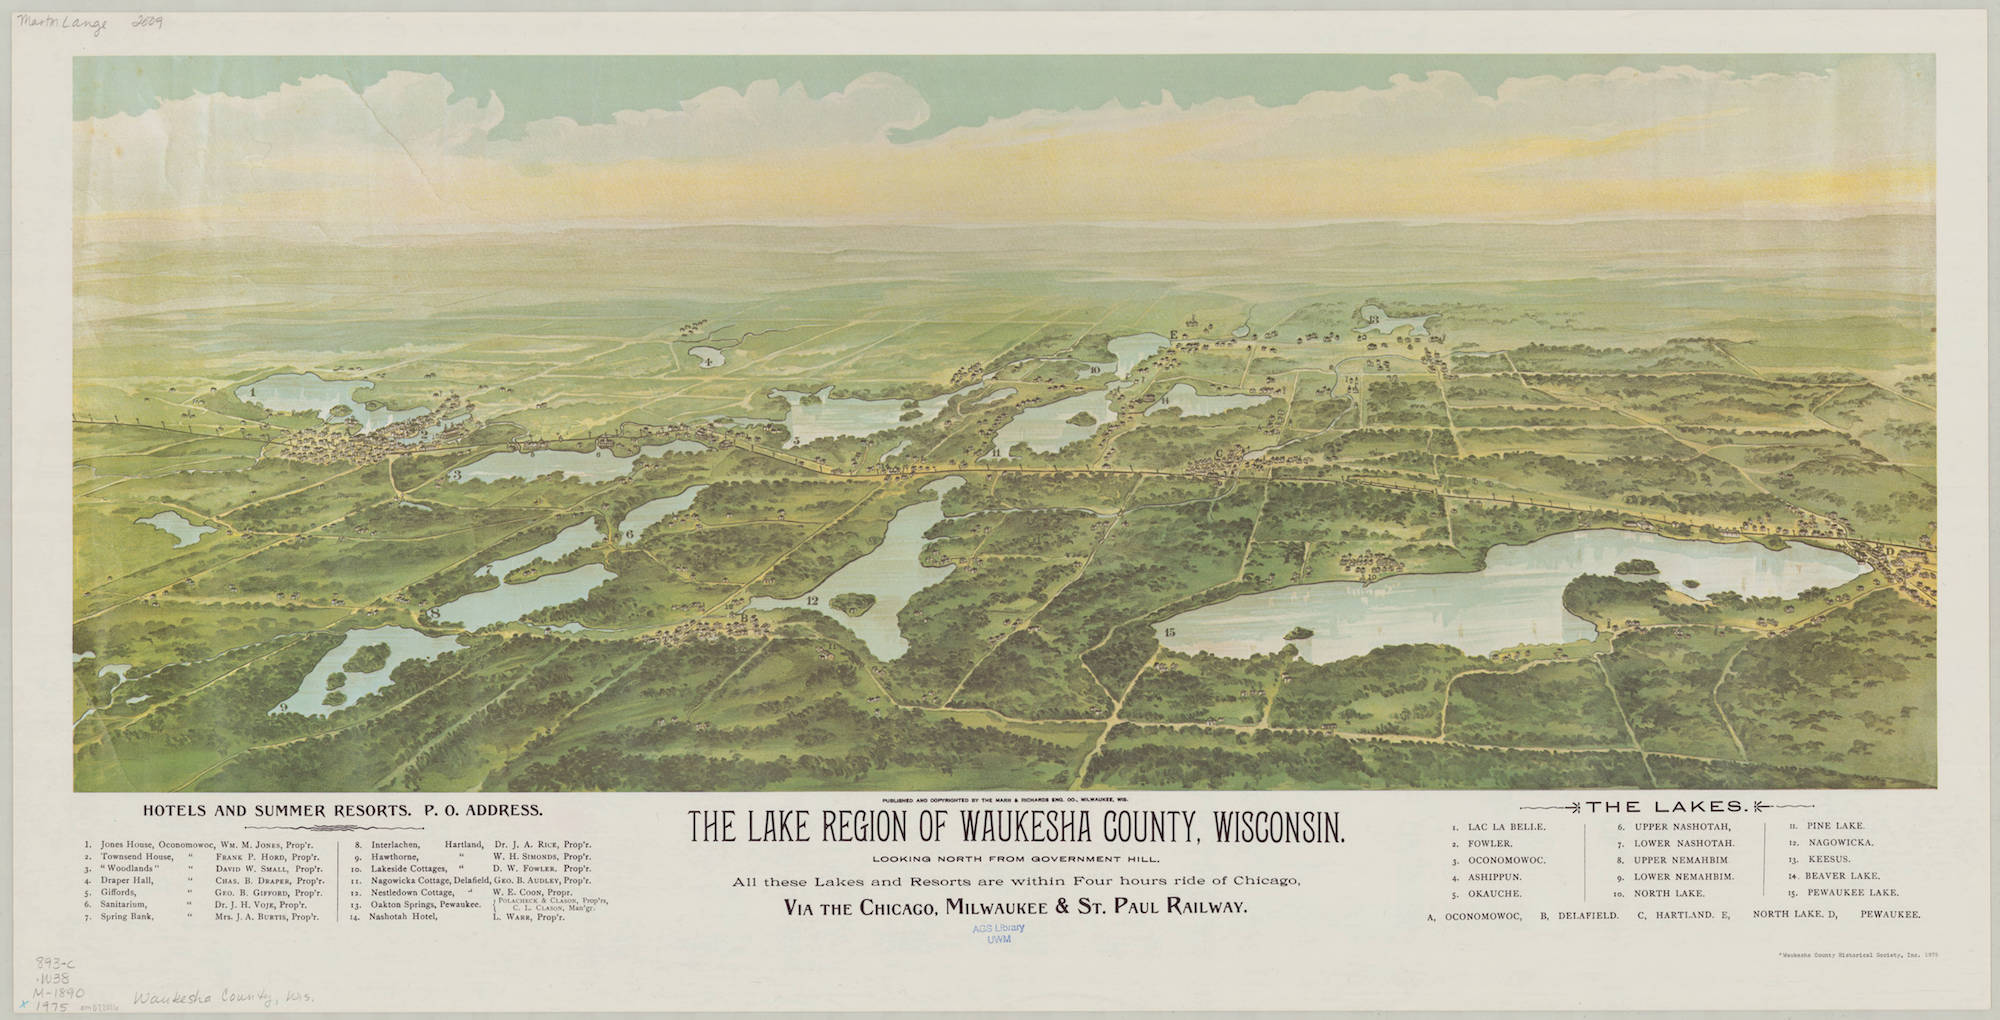 The Lake Country is shown in this 1890 bird's eye view.